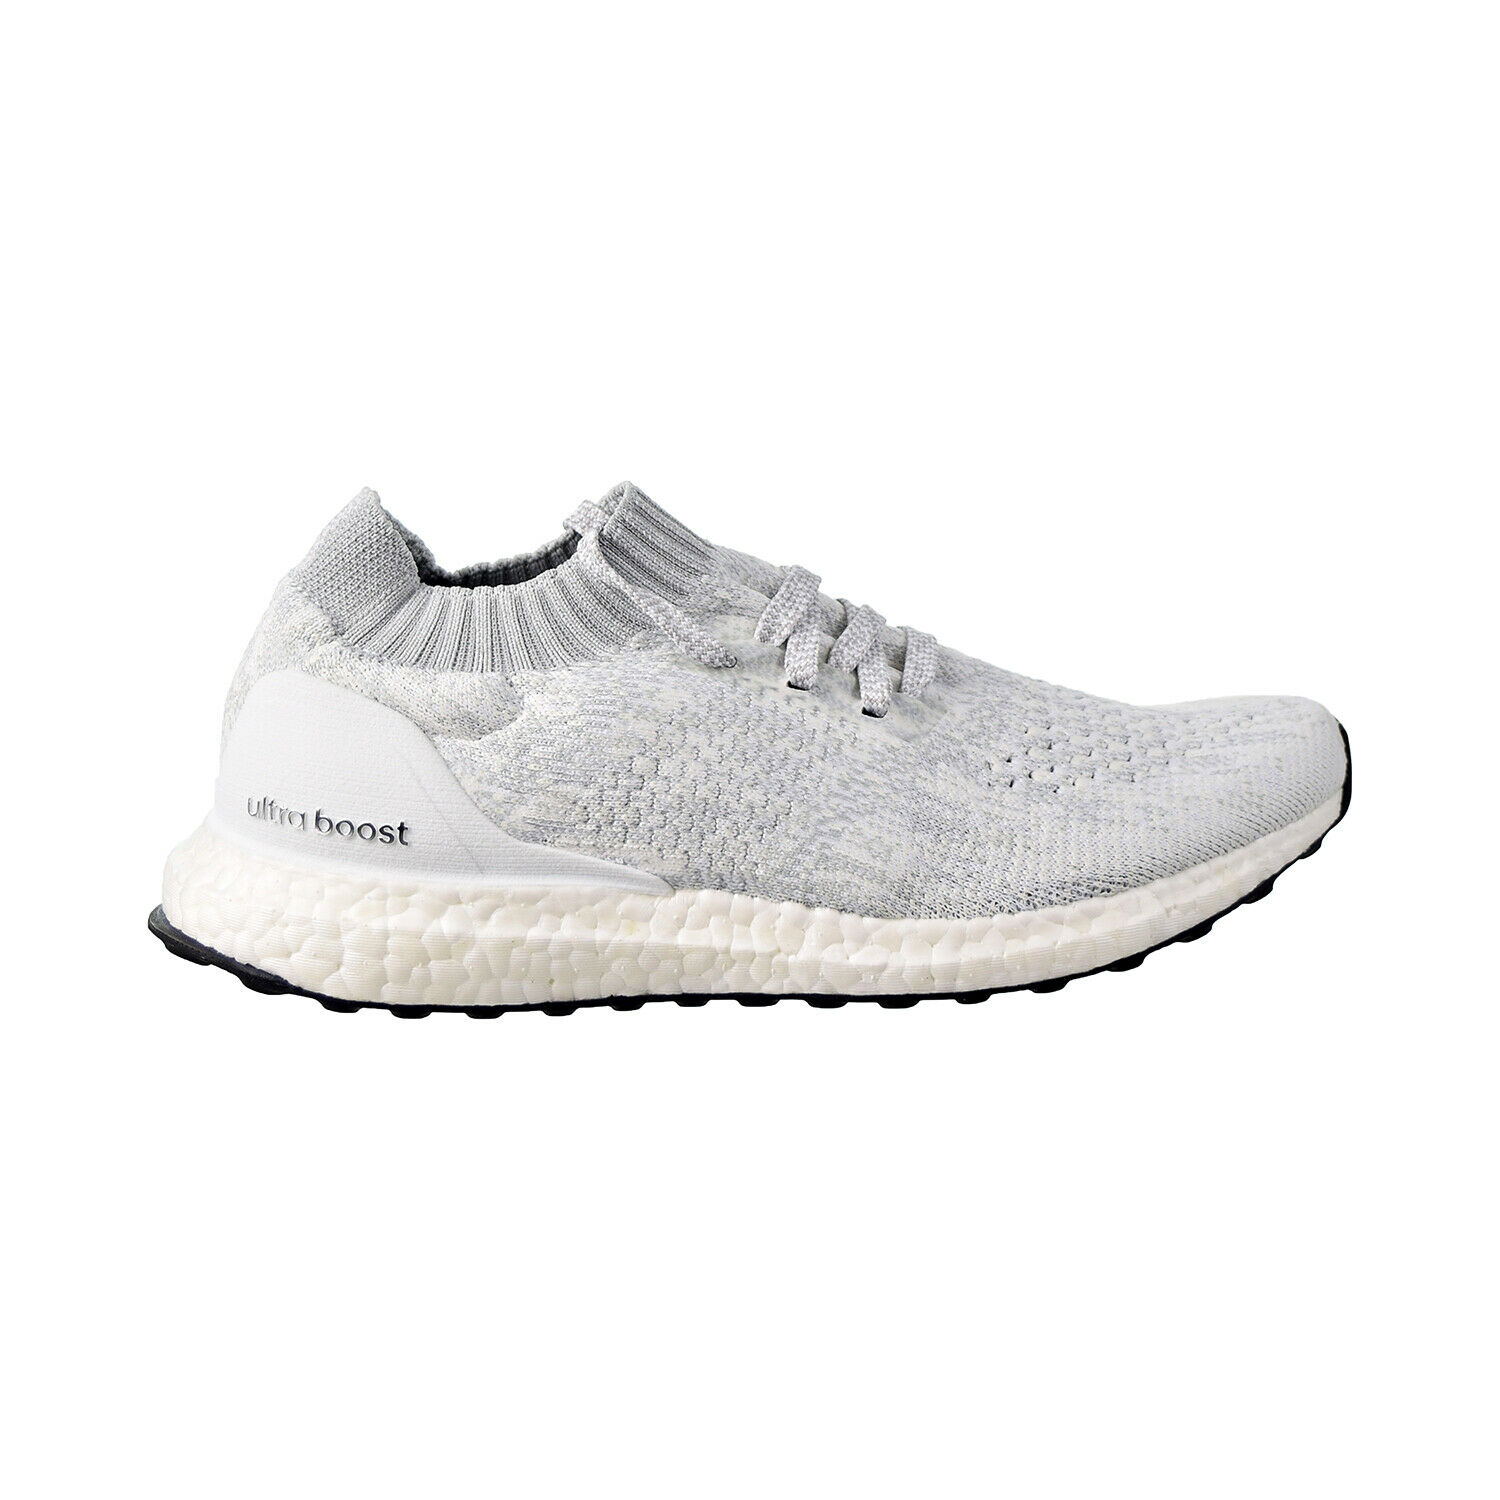 2157b4a1 Adidas UltraBoost Uncaged Mens Shoes Cloud White/Running White/Core Black  DA9157 for sale online